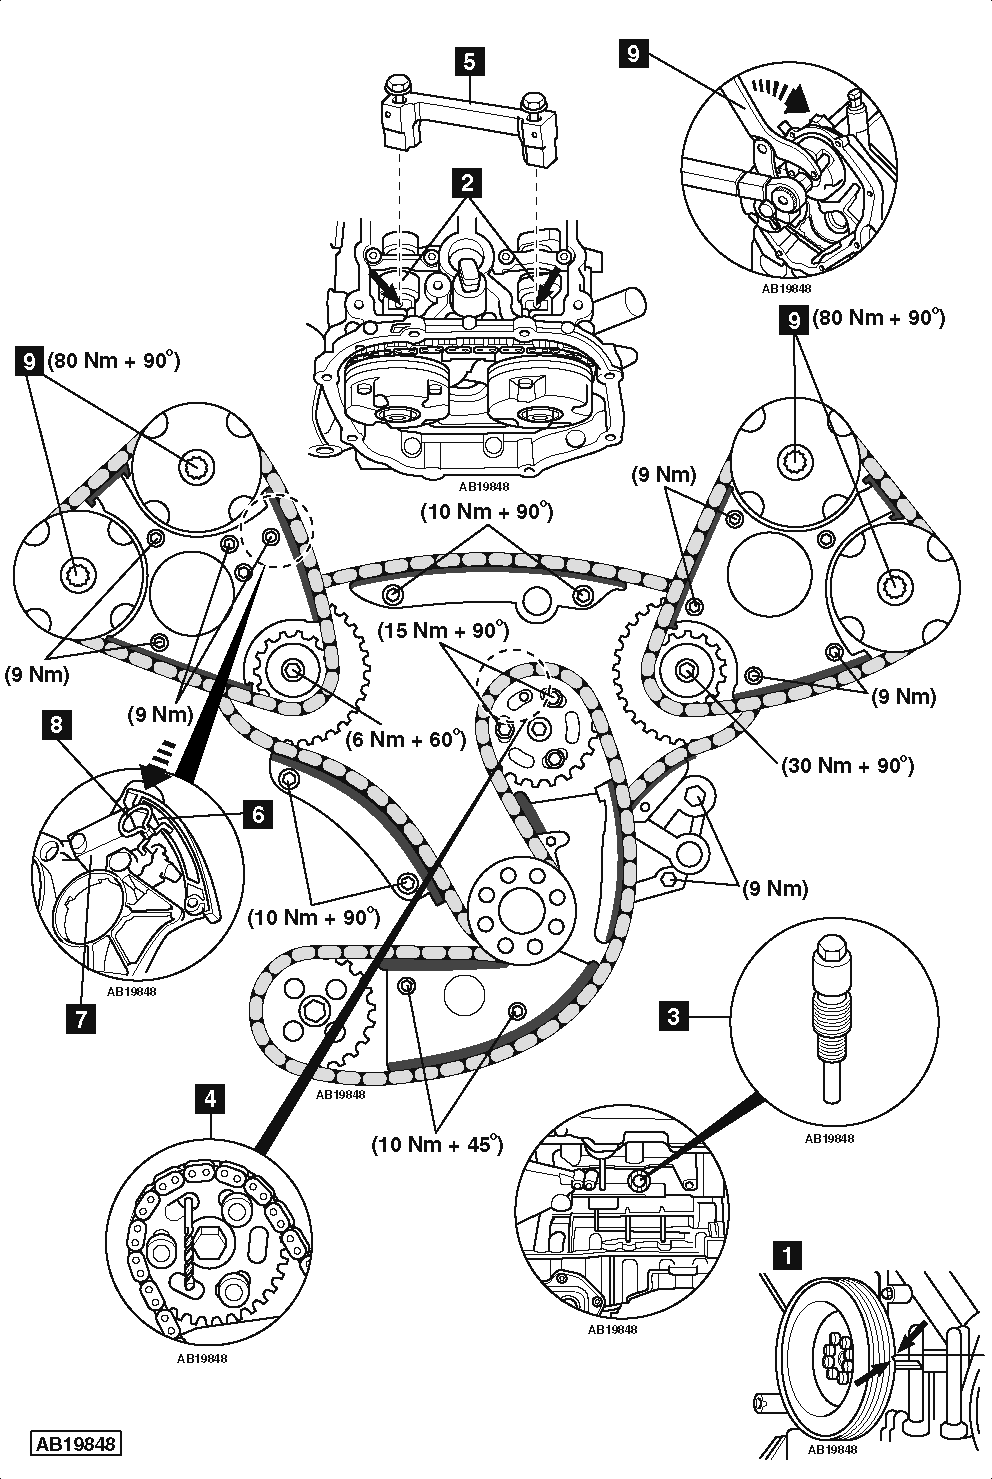 Report Gm Developing Twin Turbo 3 0l V6 To Fight Ecoboost as well Suzuki Lt A50 Kawasaki Kfx50 Atv Online Service Manual as well respond moreover Carb keihin  K39 carb exploded view parts snowmobile also Honda cbr600rr 2009. on spark plug for honda